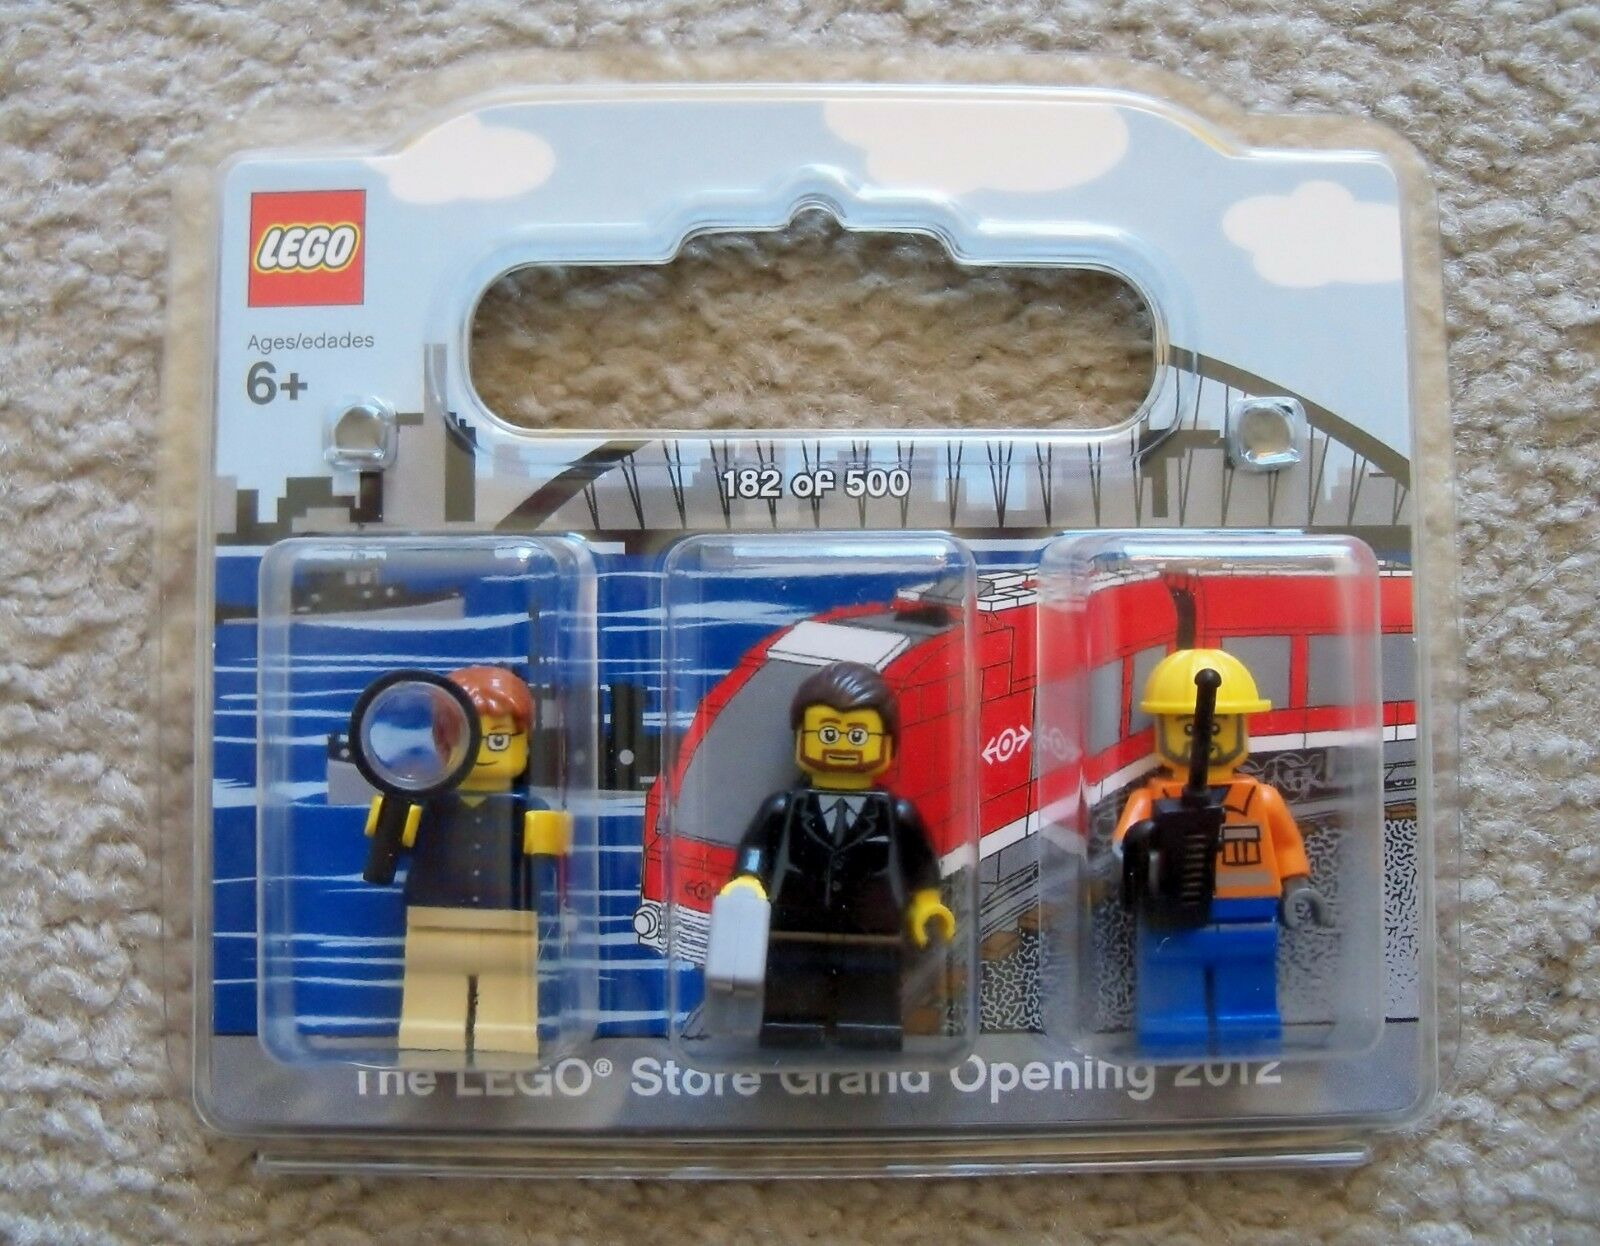 LEGO Store - Rare - Grand Opening Exclusive - Elizabeth NJ 2012 182 500 - New